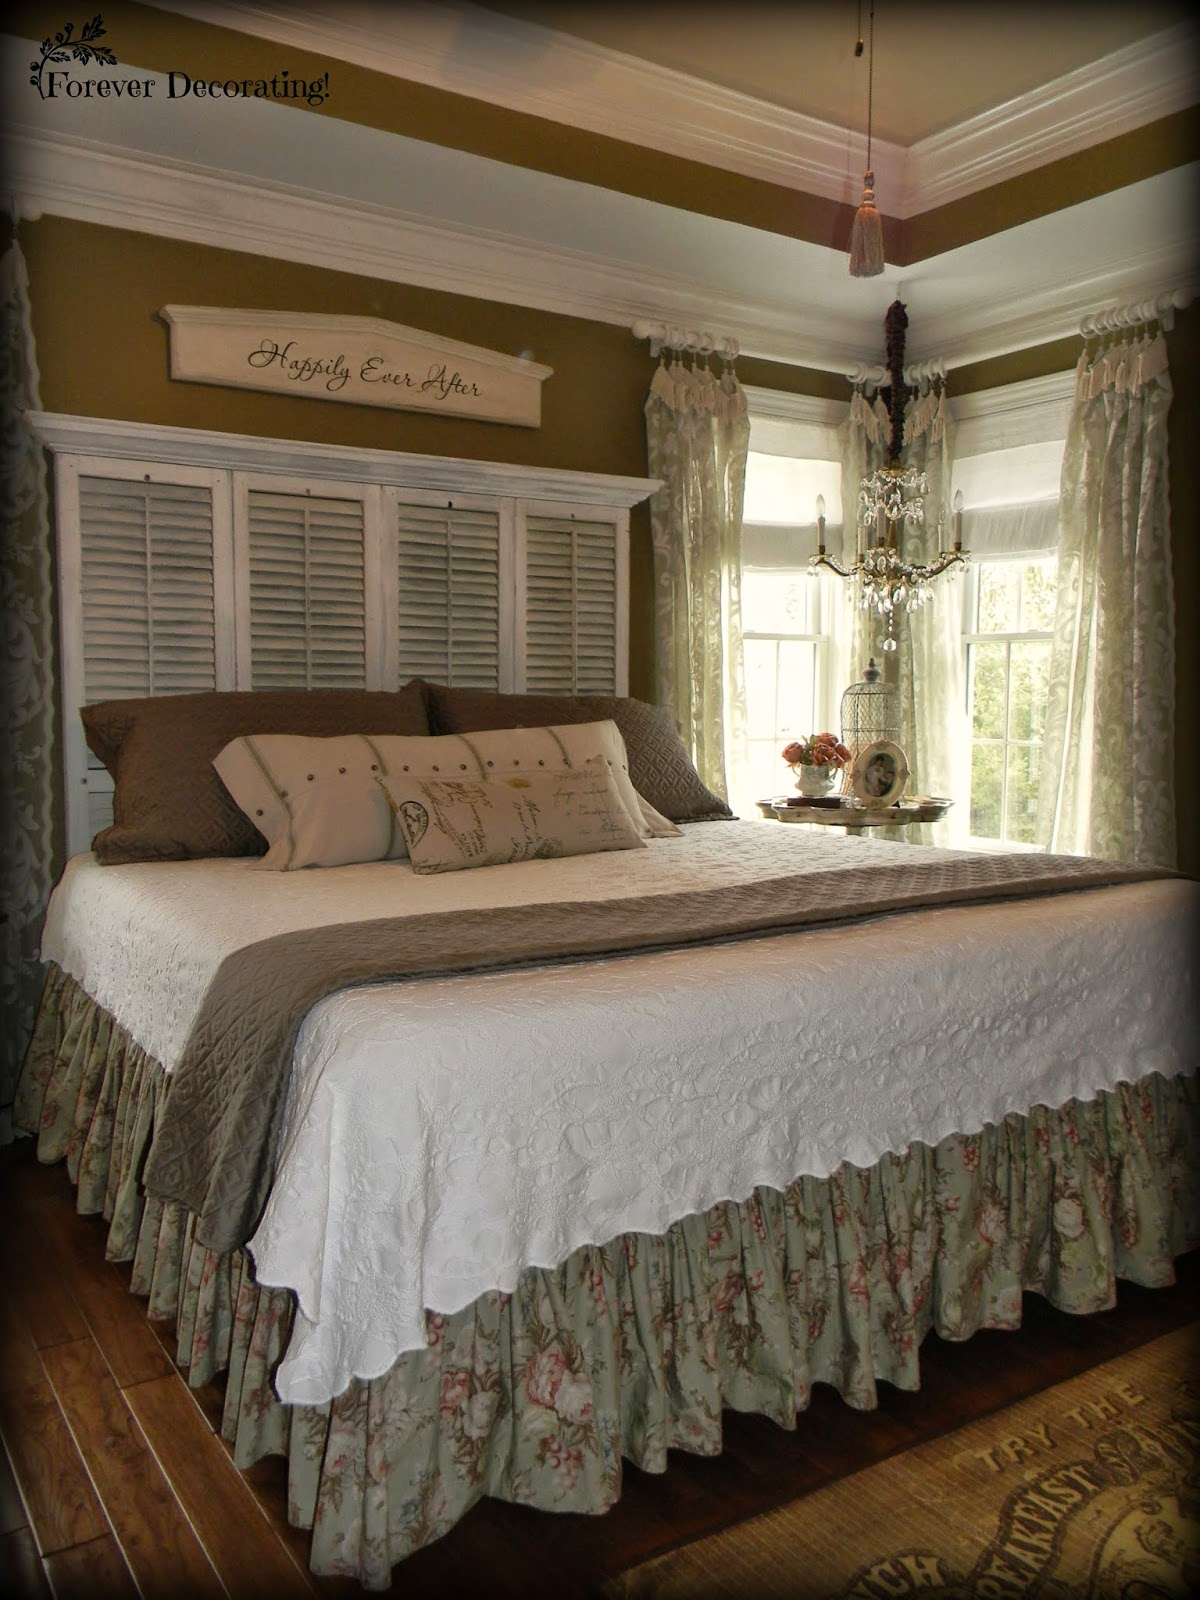 Master Bedroom Decorating Ideas On A Budget: Forever Decorating!: No Cost Decorating